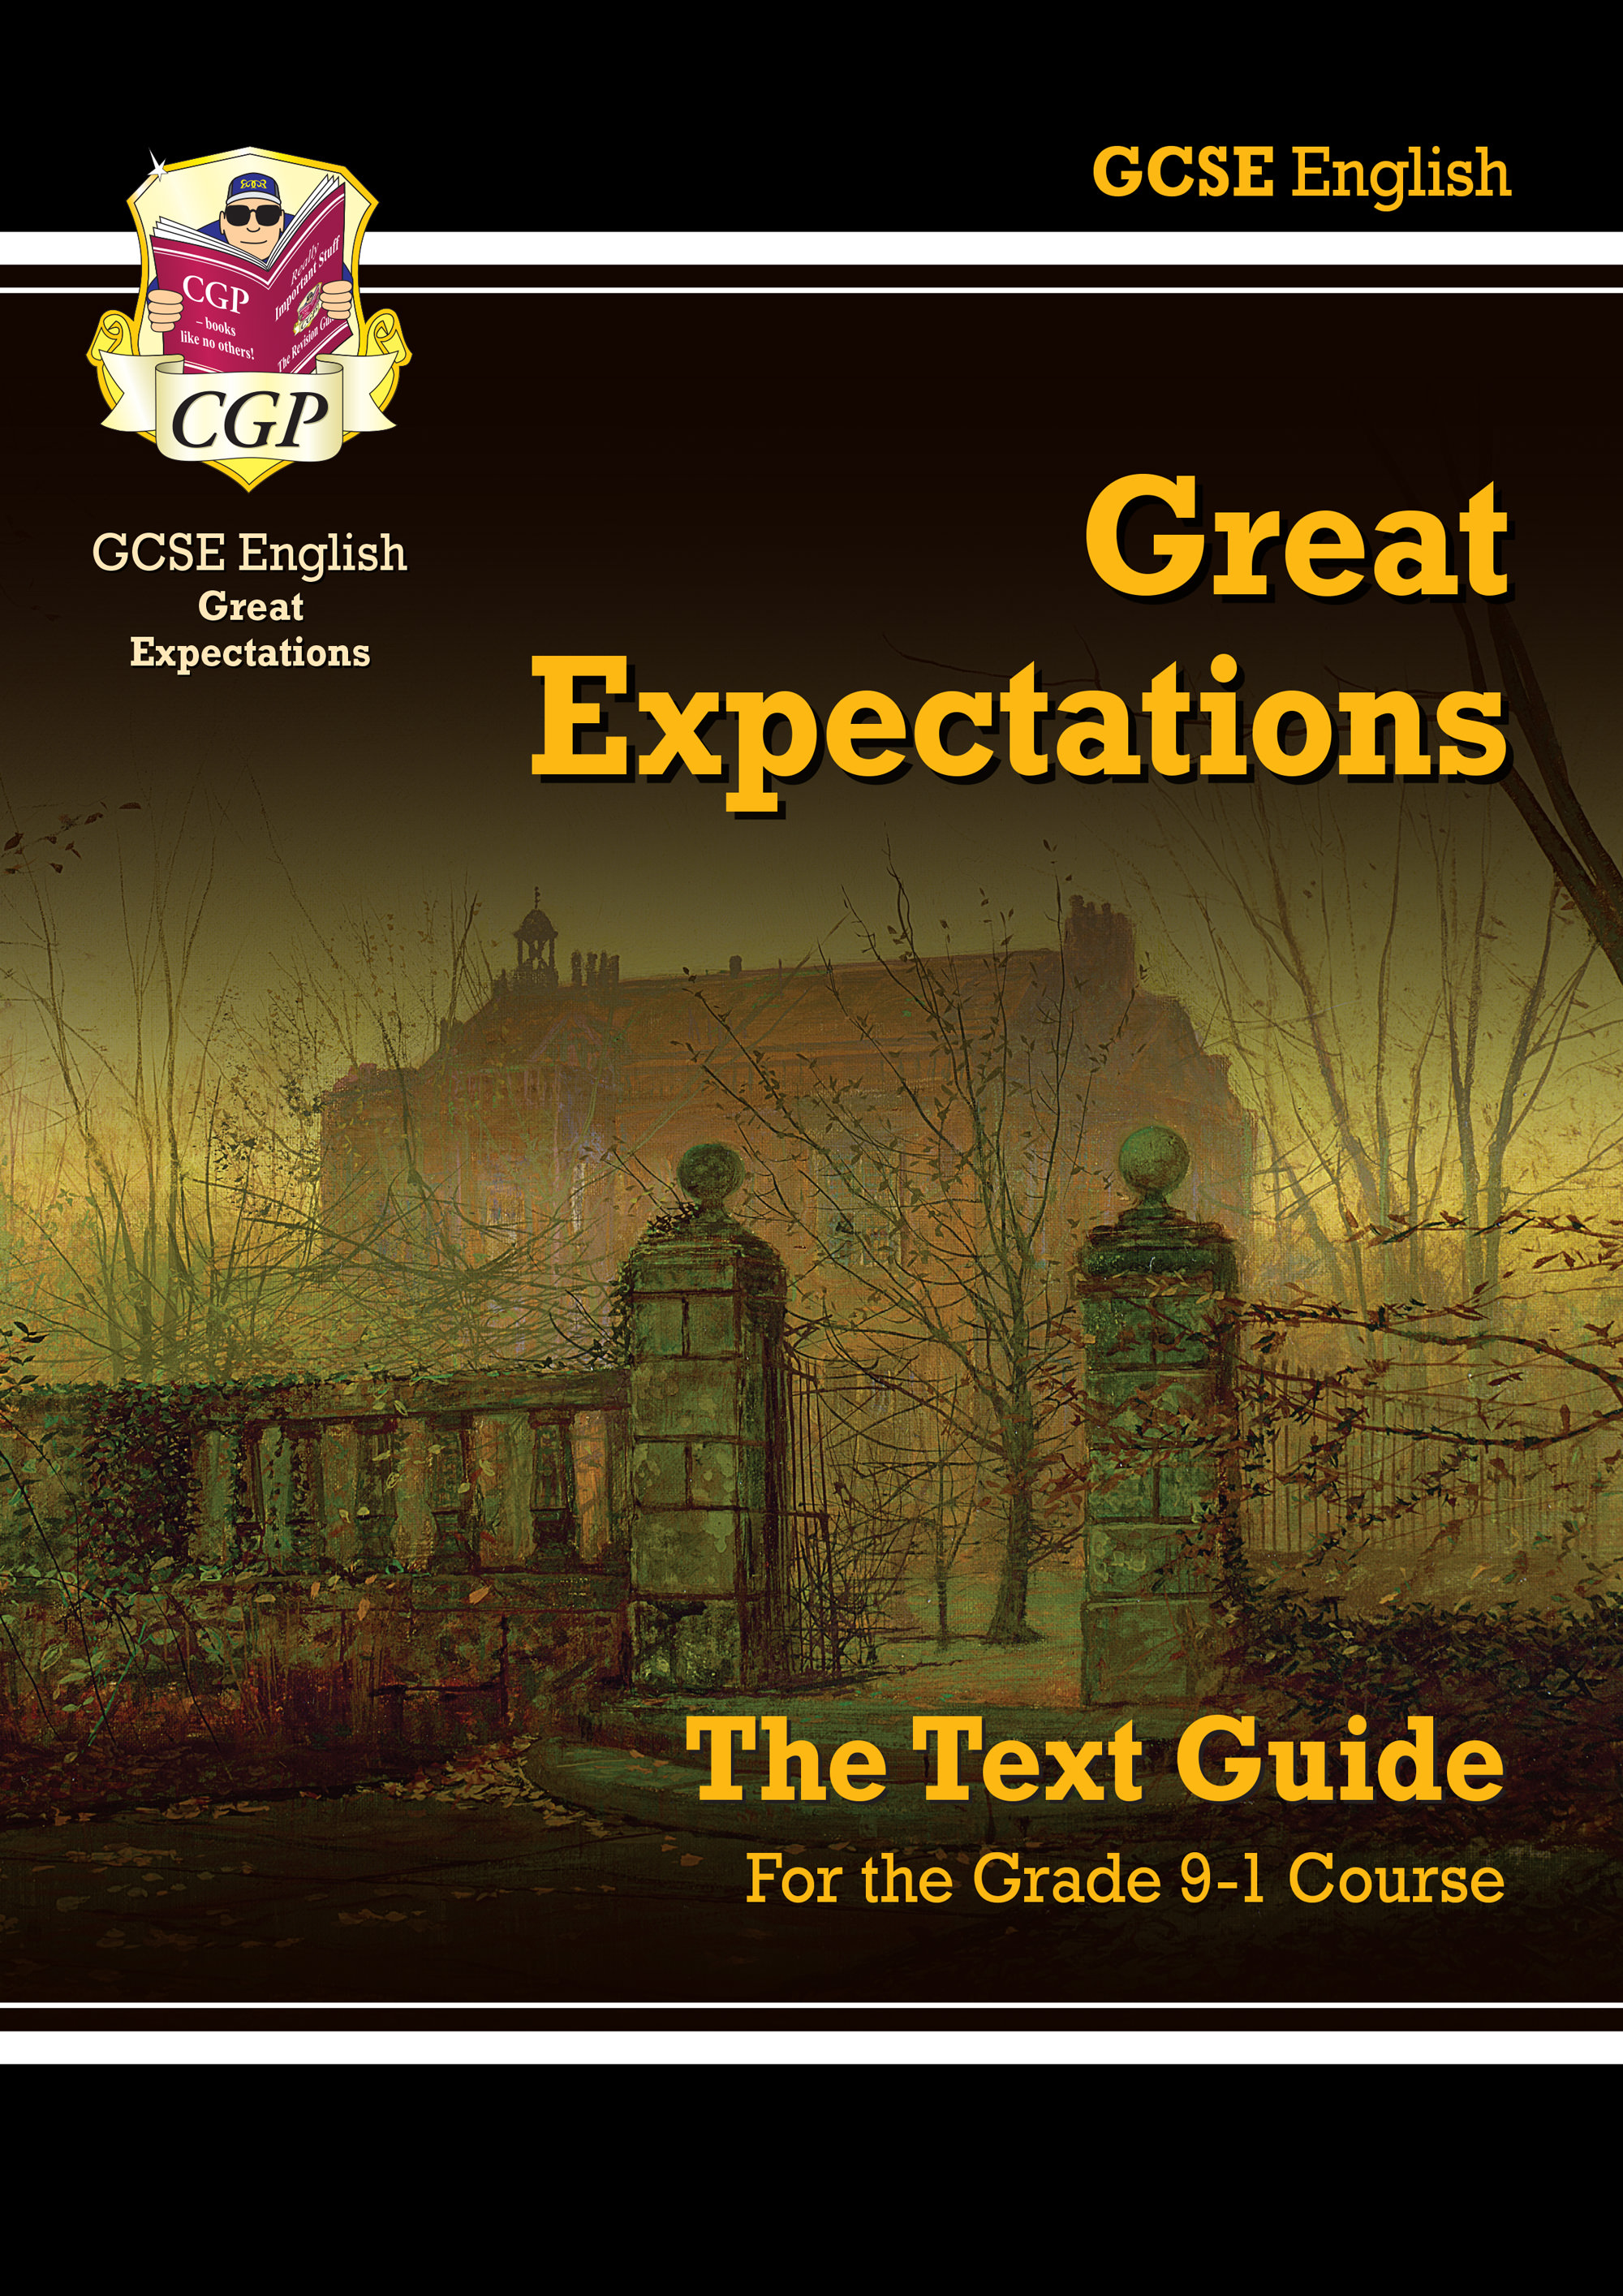 ETG43 - Grade 9-1 GCSE English Text Guide - Great Expectations